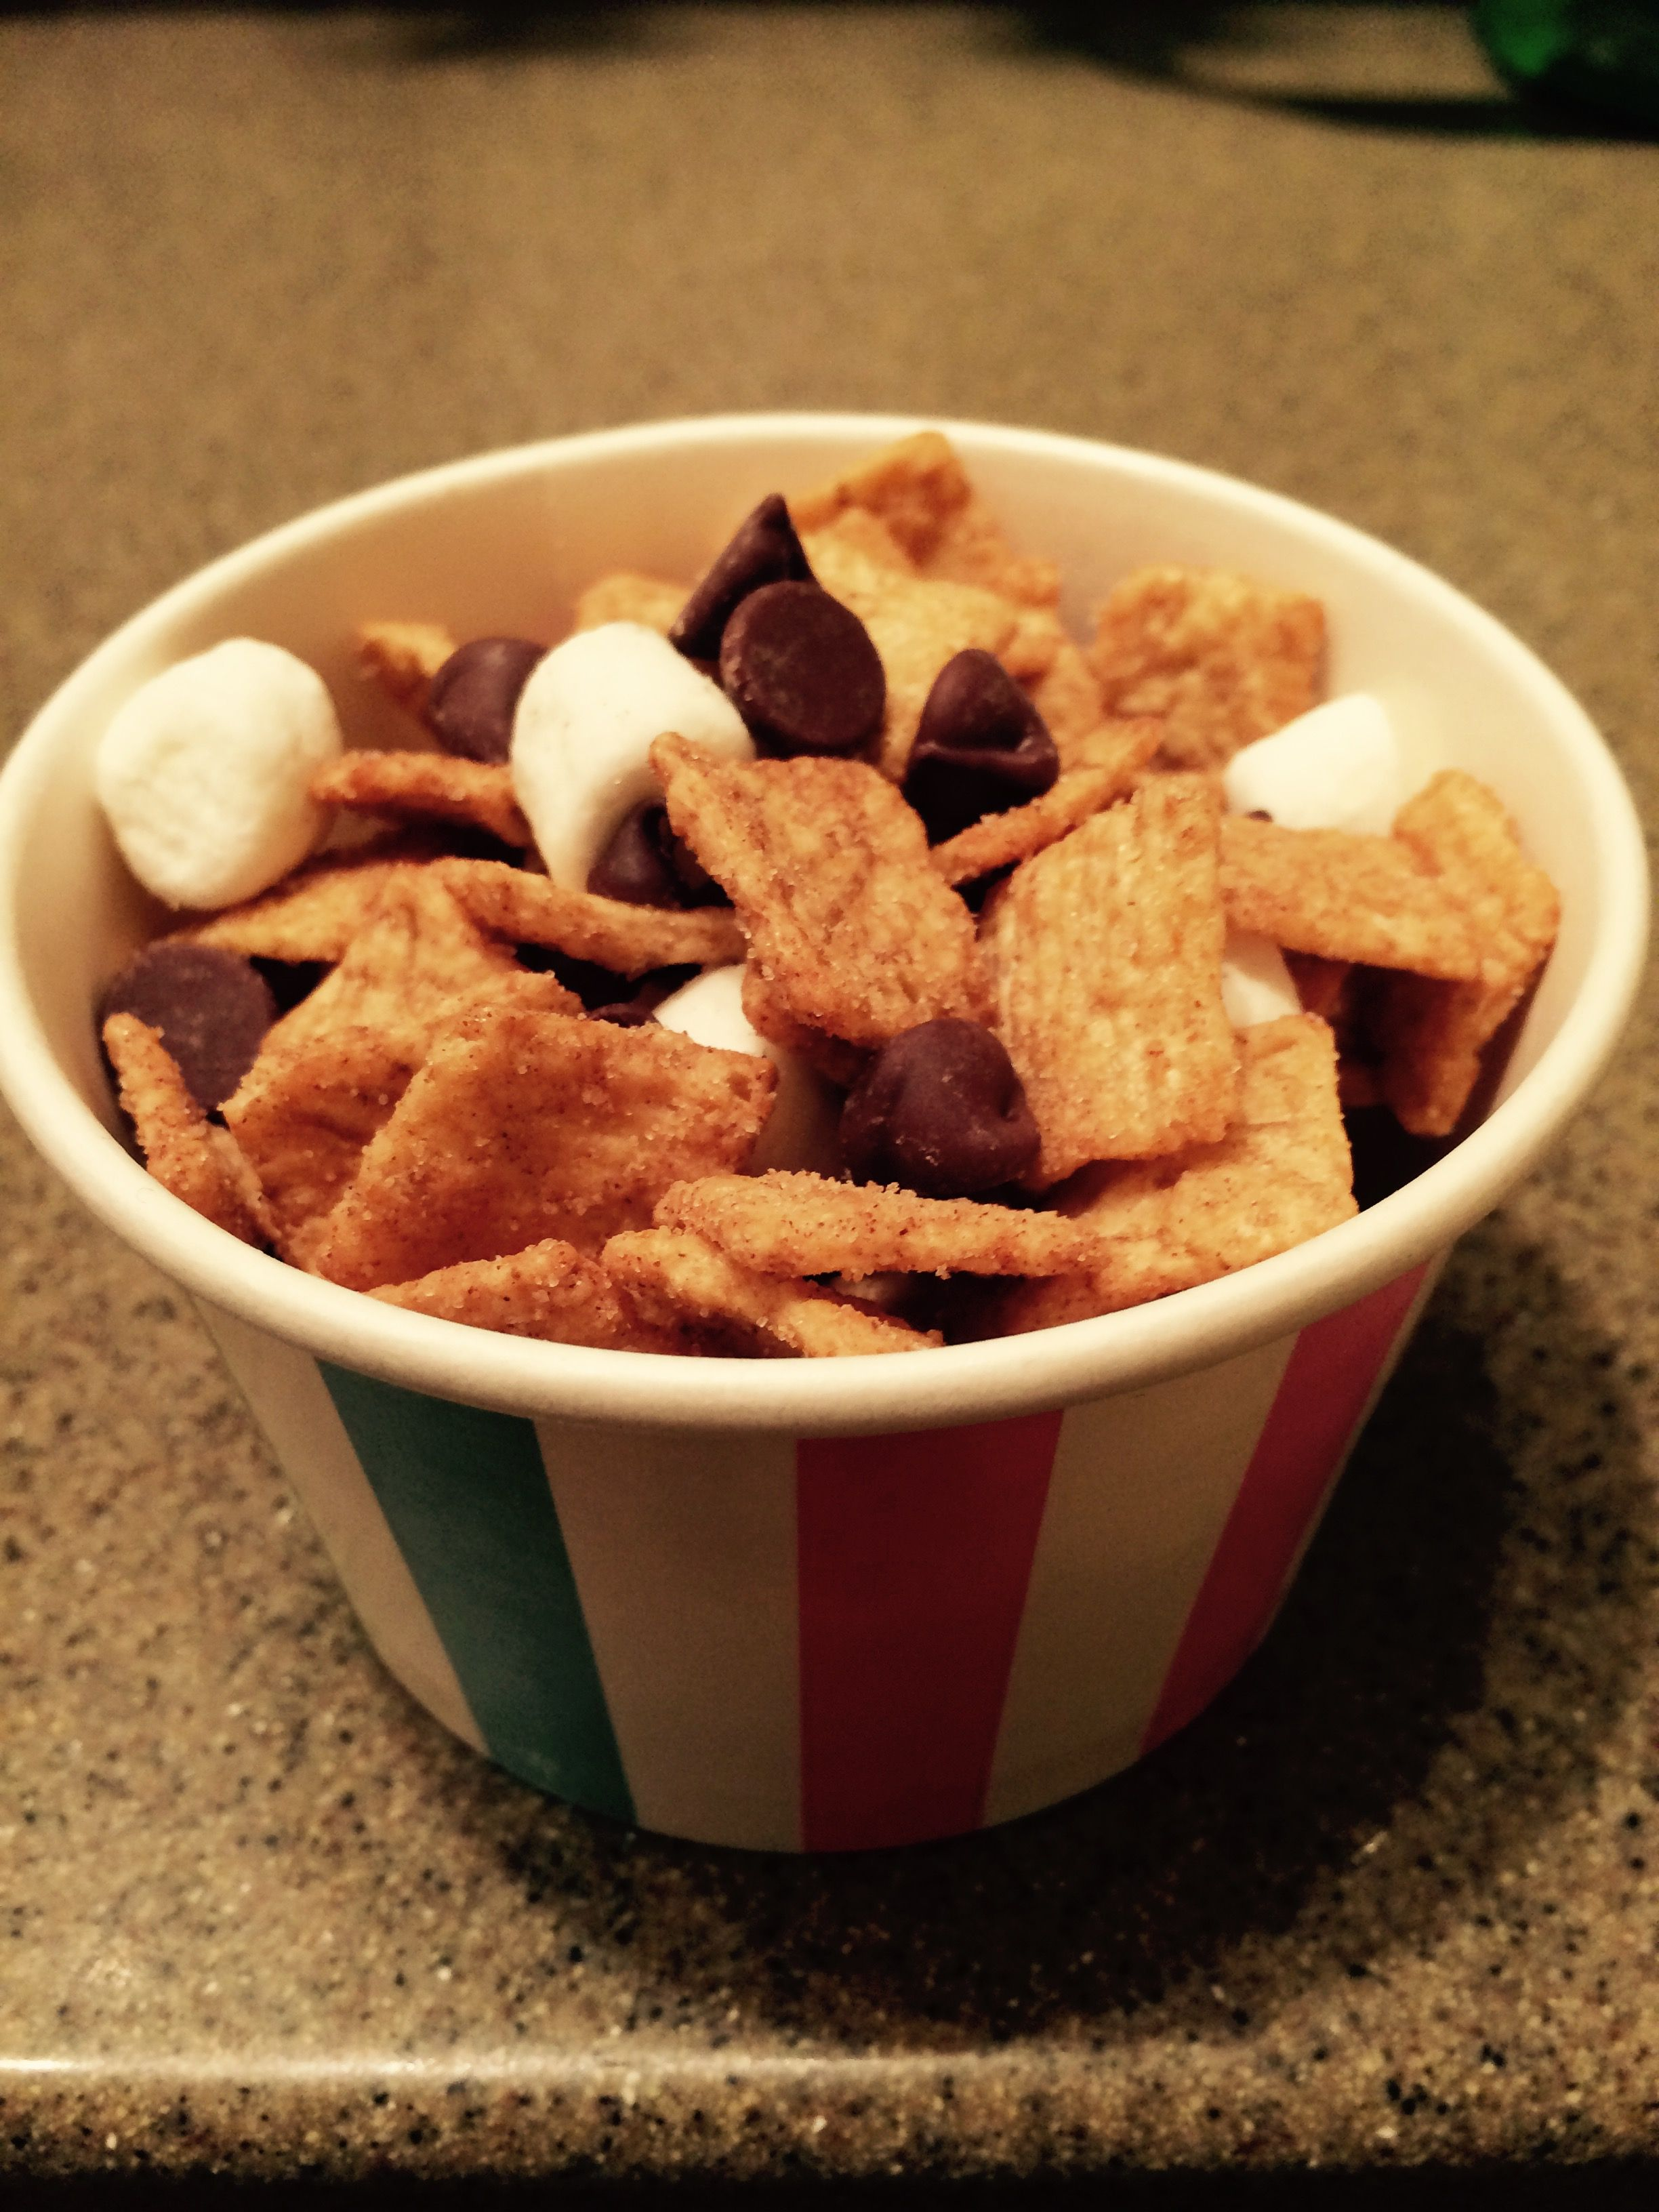 S'mores in a Cup Perfect for class parties! Cinnamon Toast Crunch cereal, chocolate chips & mini marshmallows. Yummy, simple & neat. Finish with a treat bag & twist tie :)